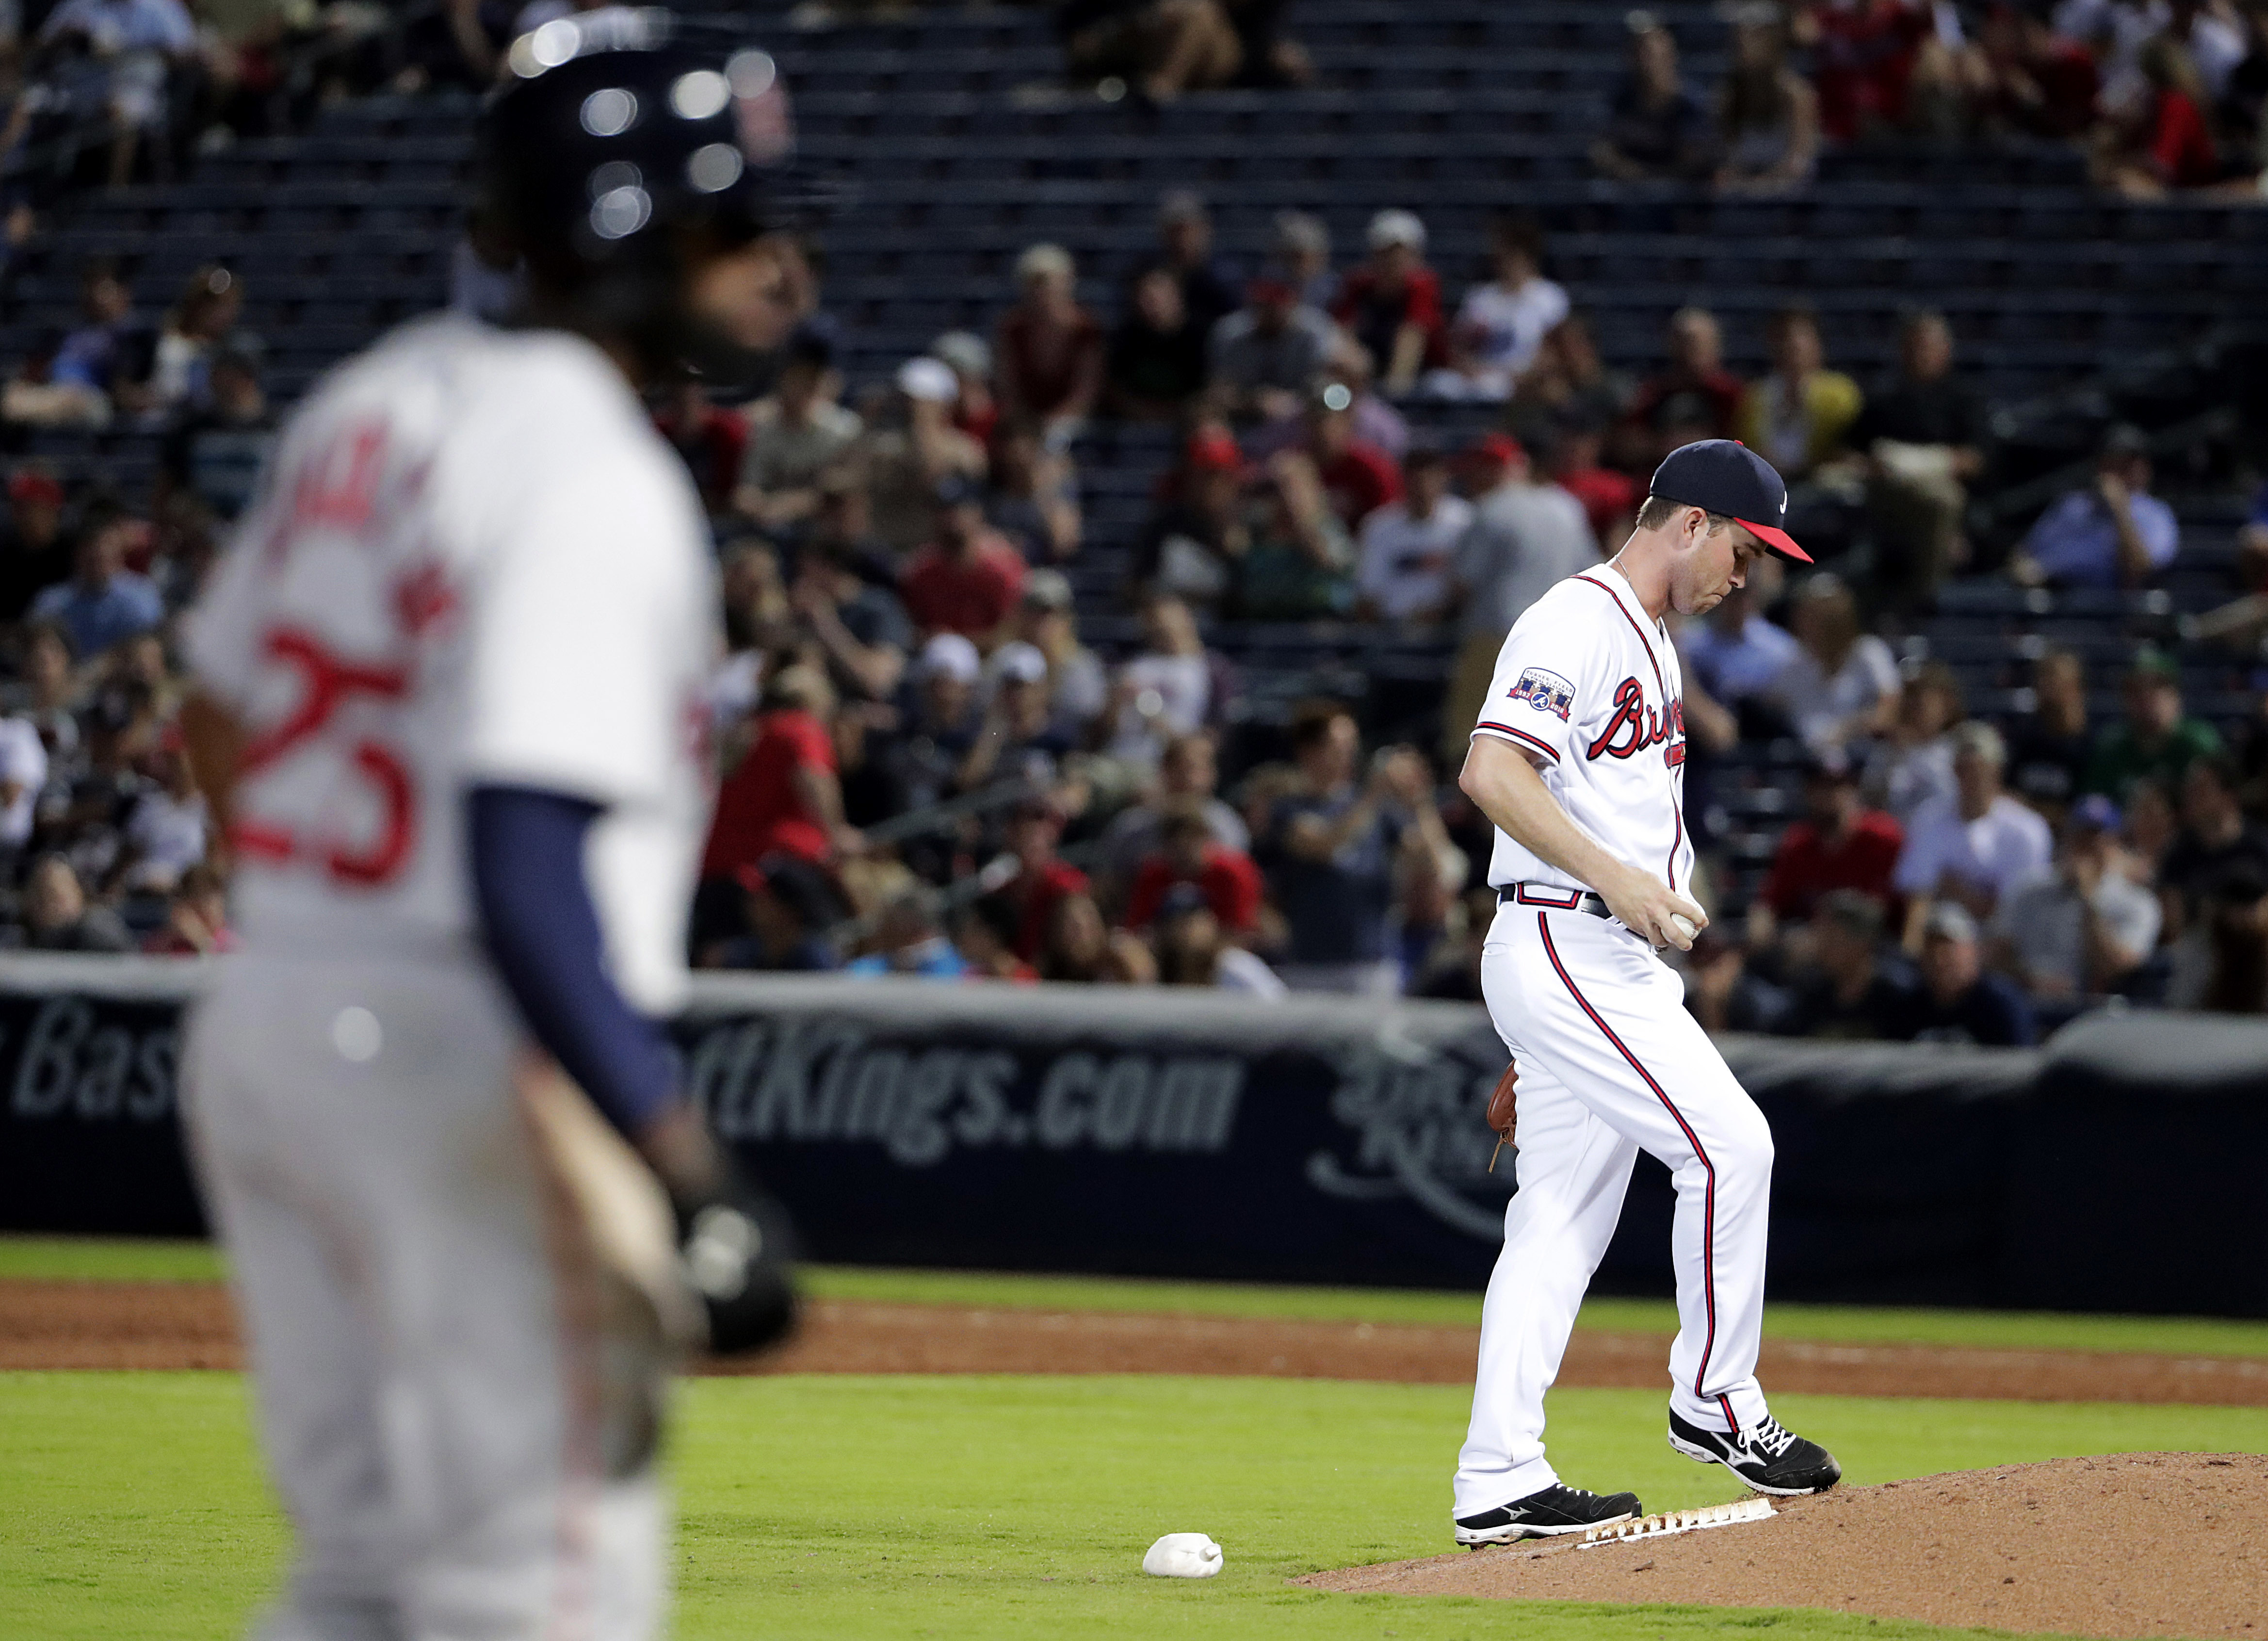 Atlanta Braves relief pitcher Ryan Weber, right, kicks the dirt after giving up a triple to Boston Red Sox's Jackie Bradley Jr., left, for a run in the ninth inning of a baseball game Tuesday, April 26, 2016, in Atlanta. Weber allowed fun runs in the nint